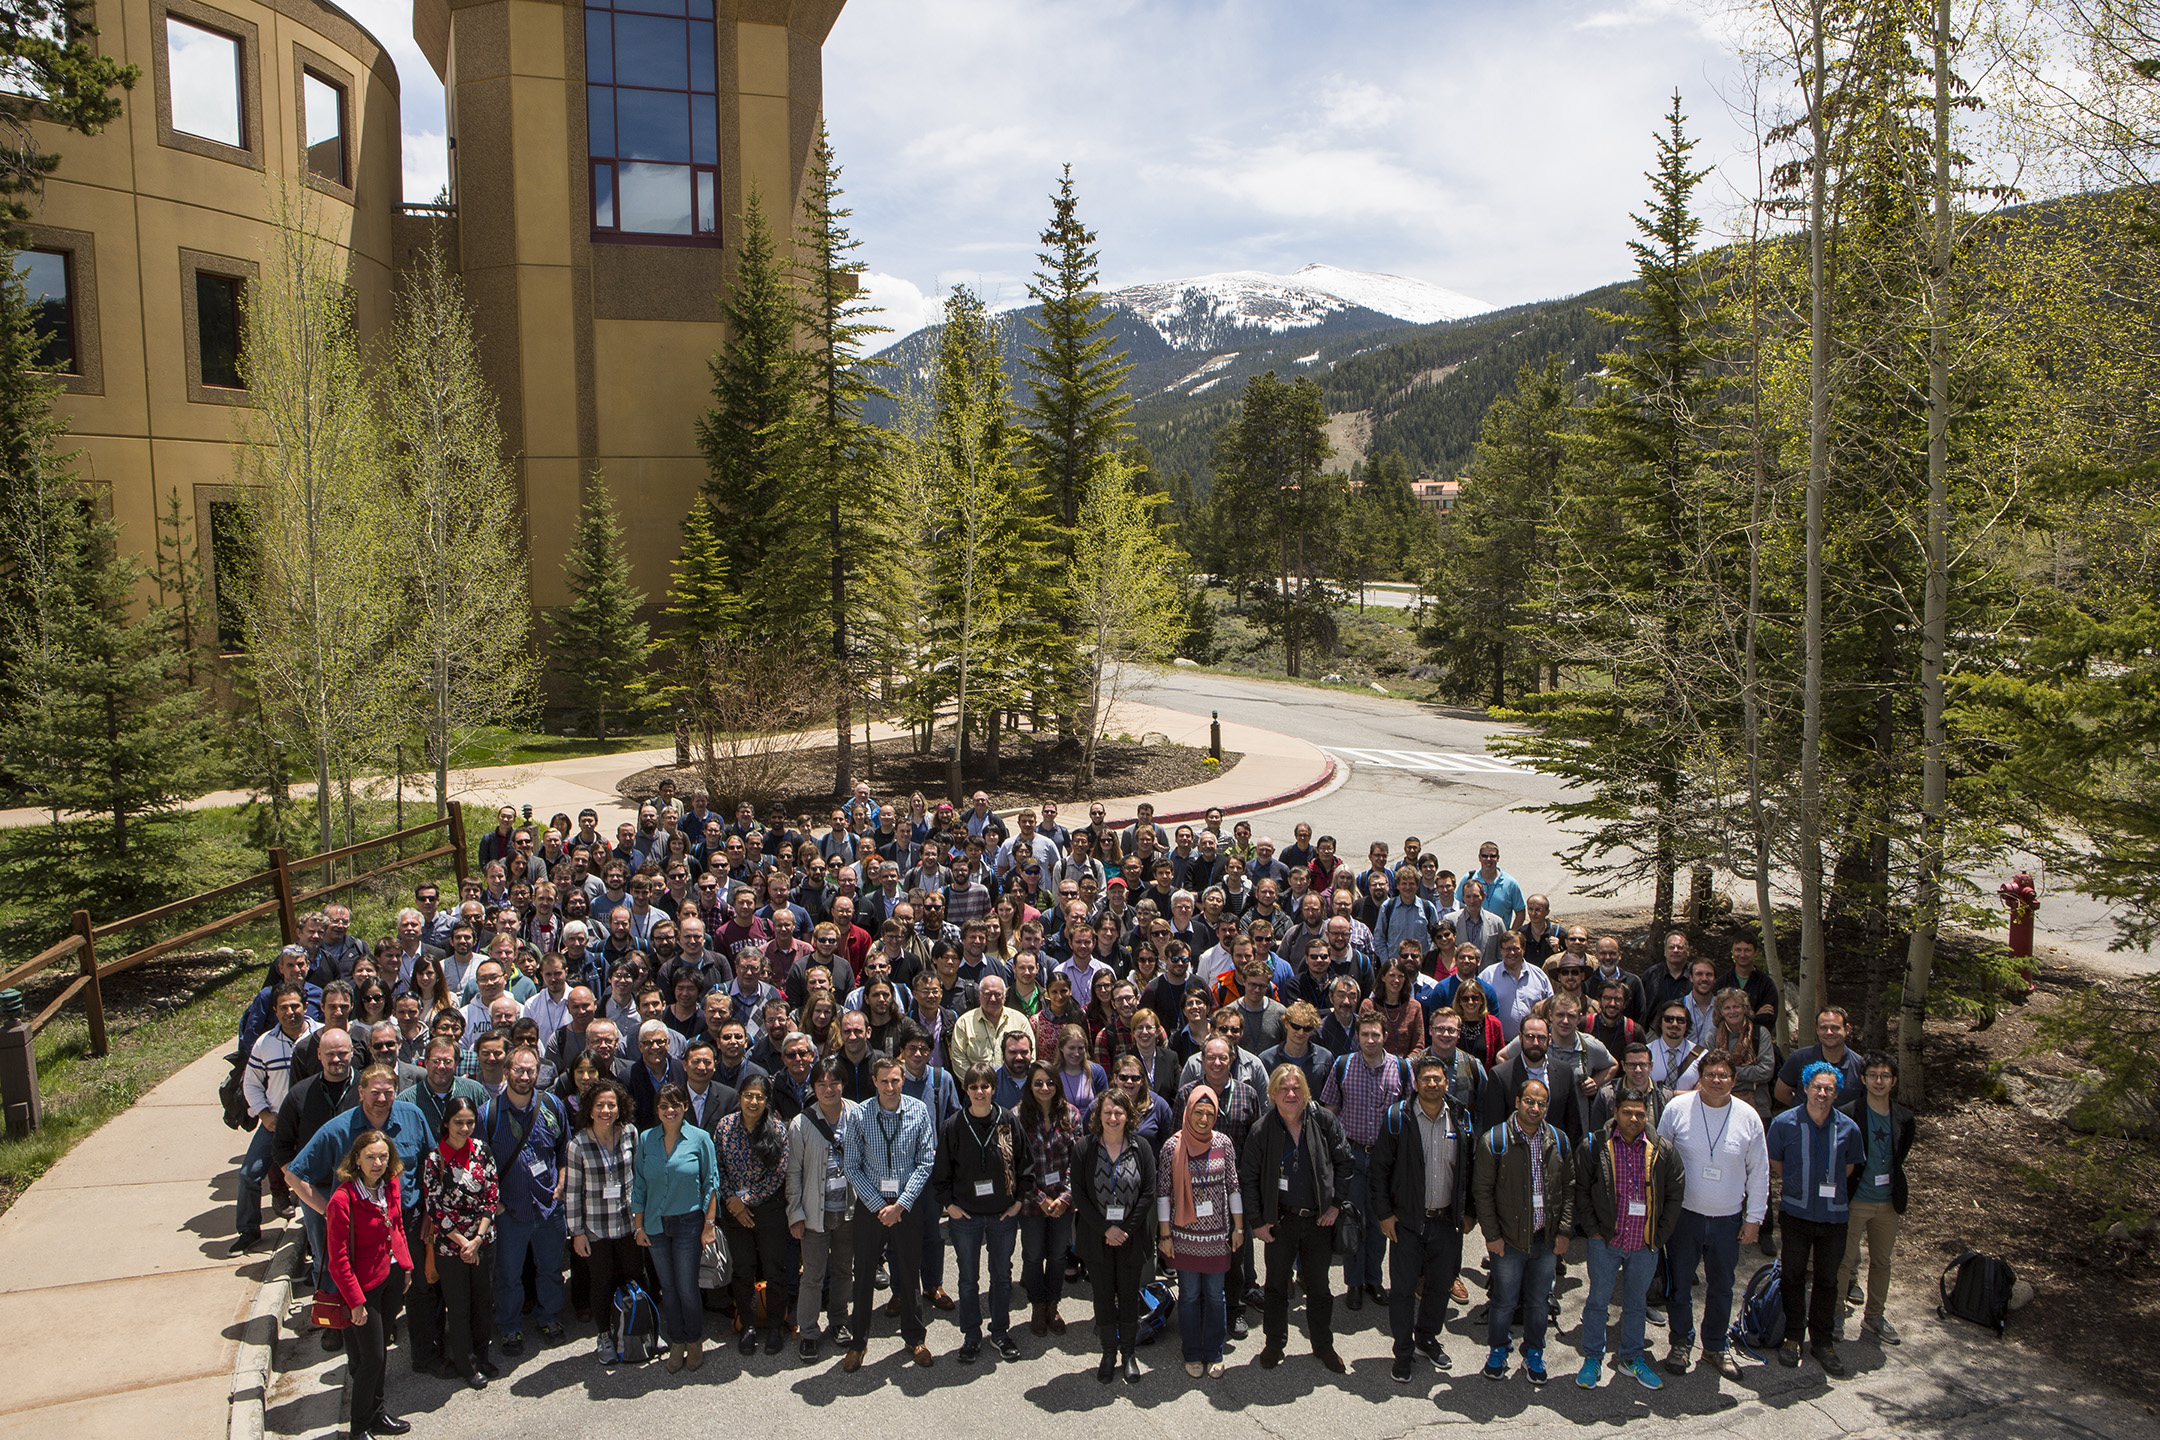 Advances in Radioactive Isotope Science (May 28, 2017 - June 2, 2017)